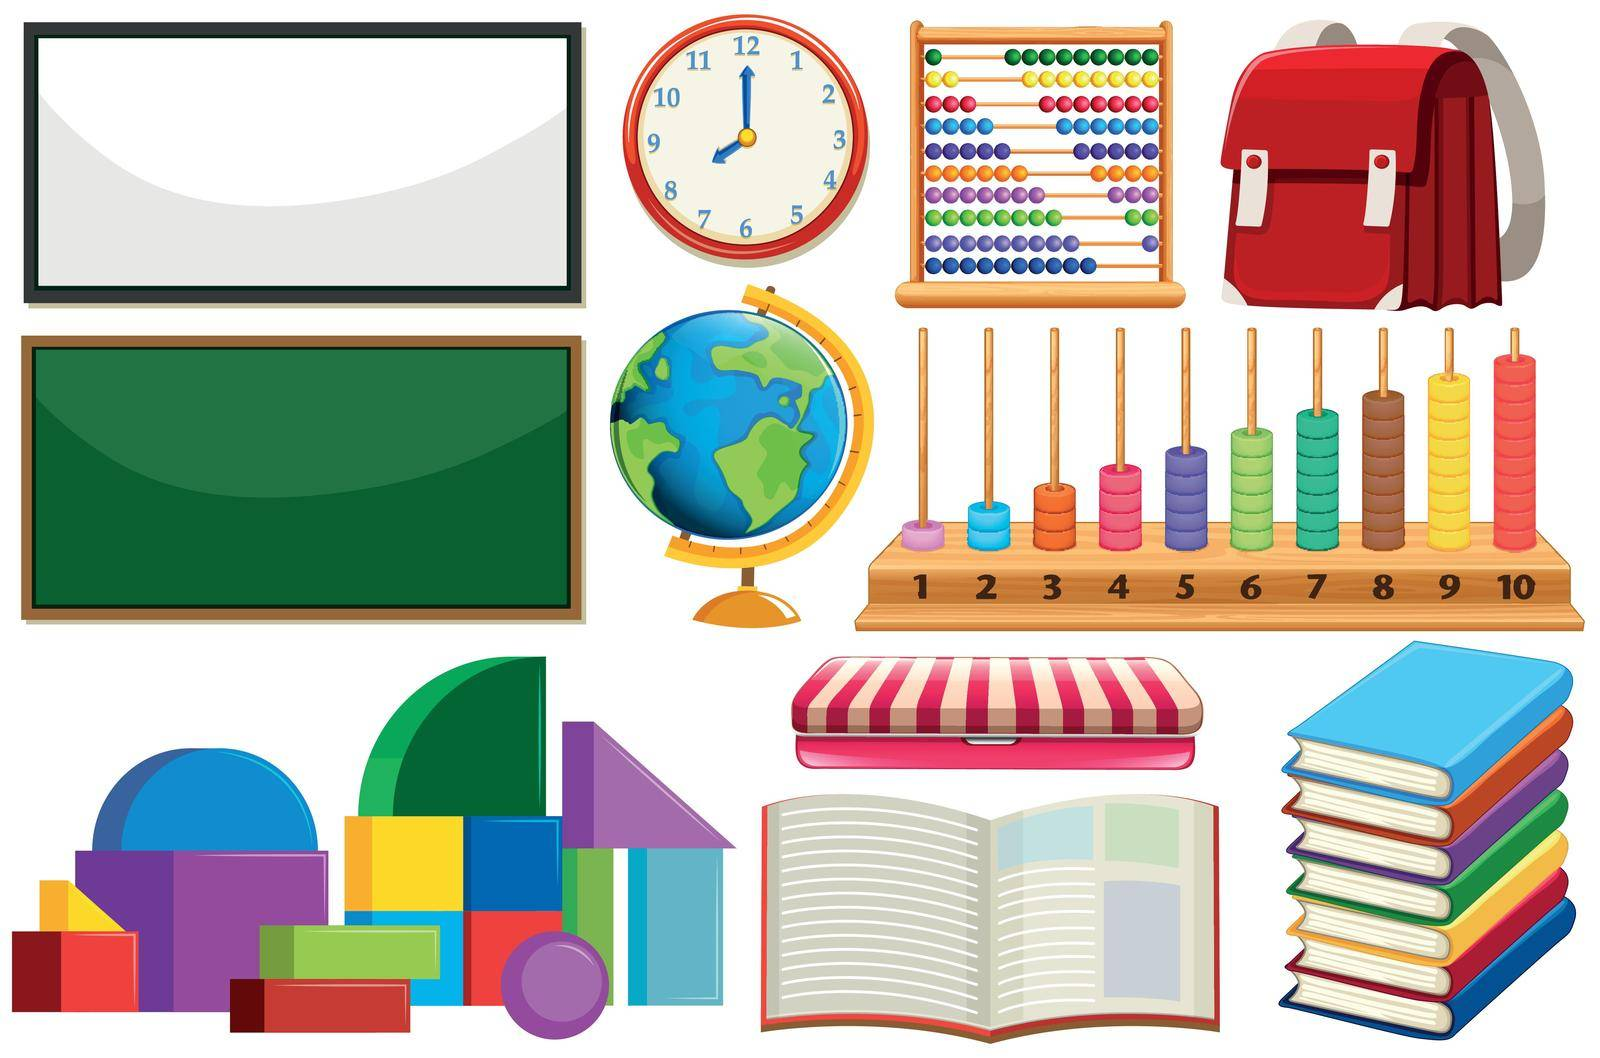 Set of learning equipment by iimages